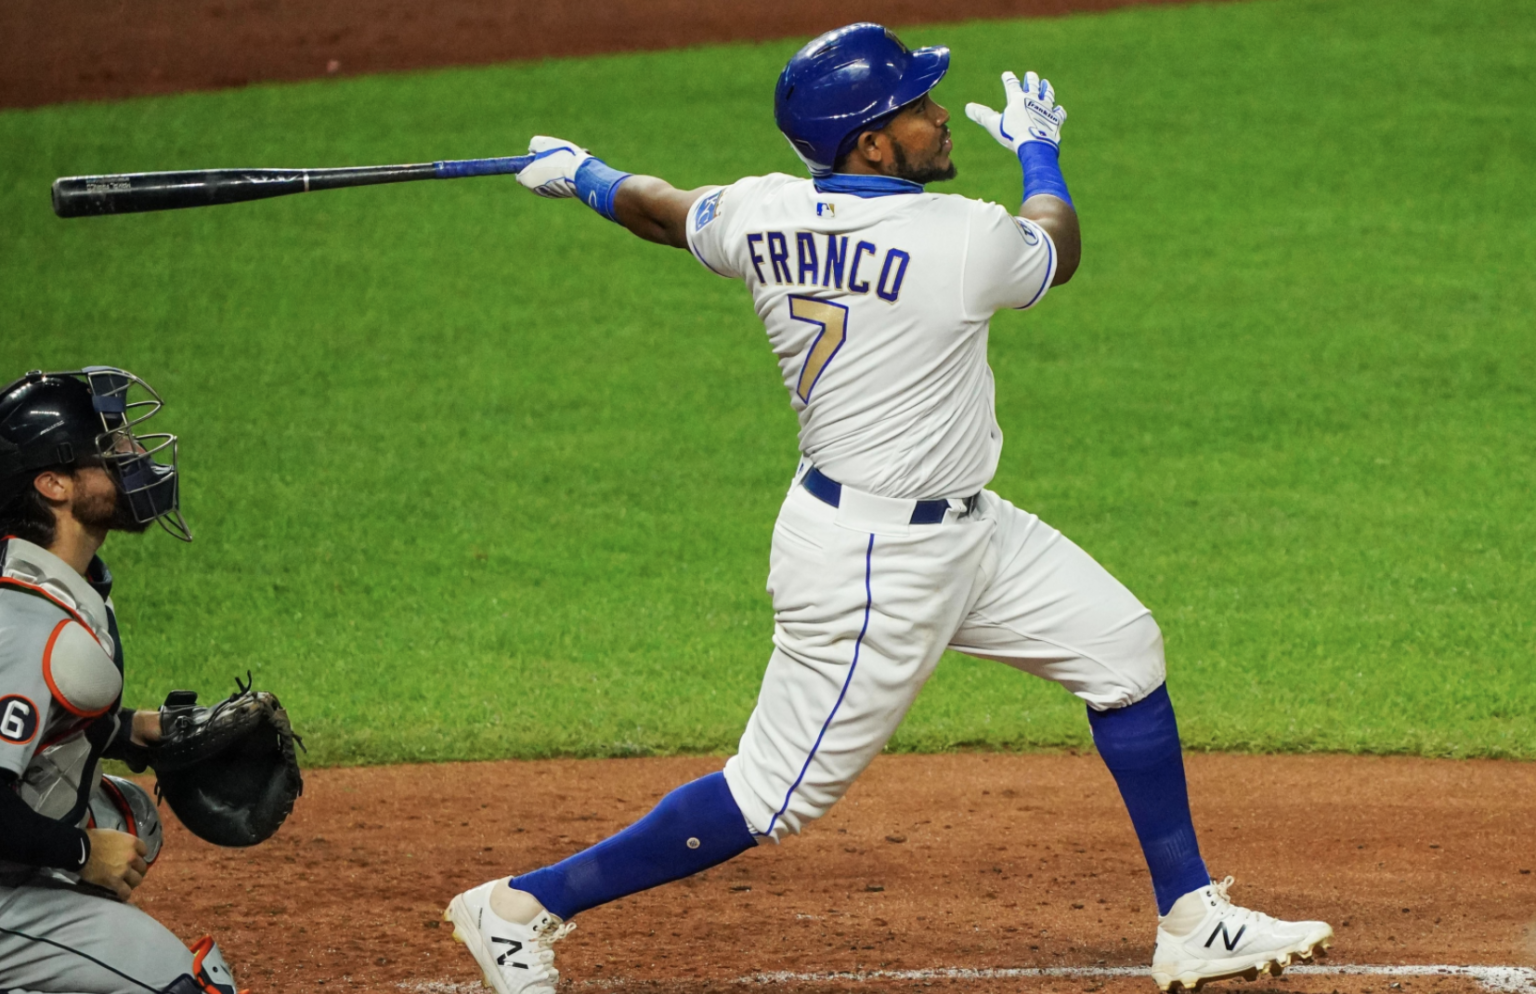 Maikel Franco finishes his swing